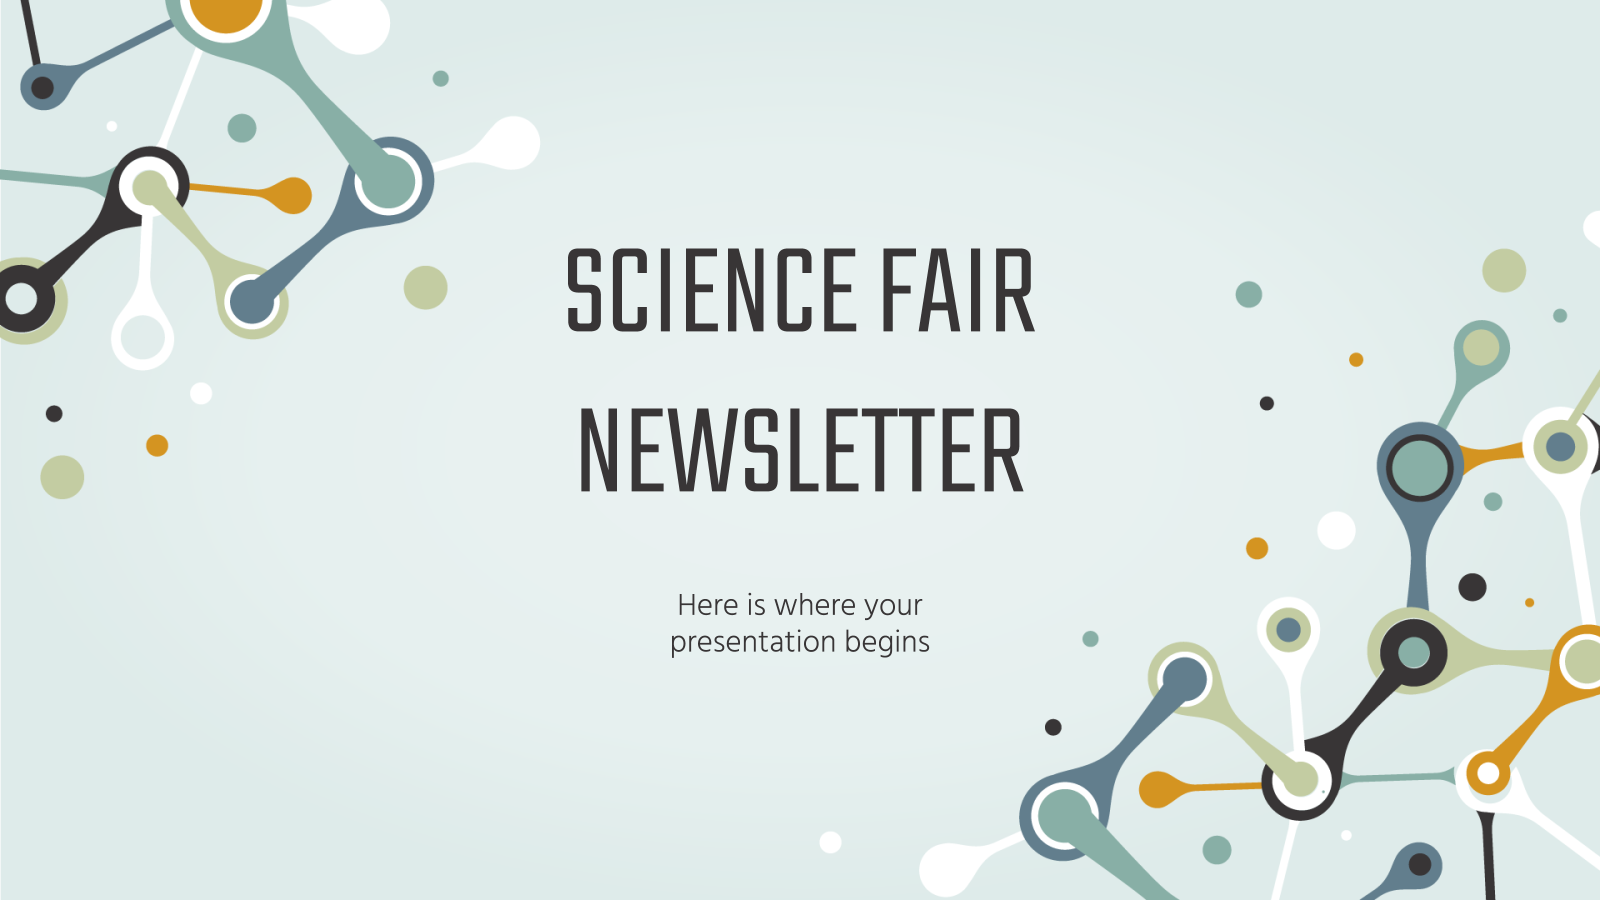 Science Fair Newsletter presentation template